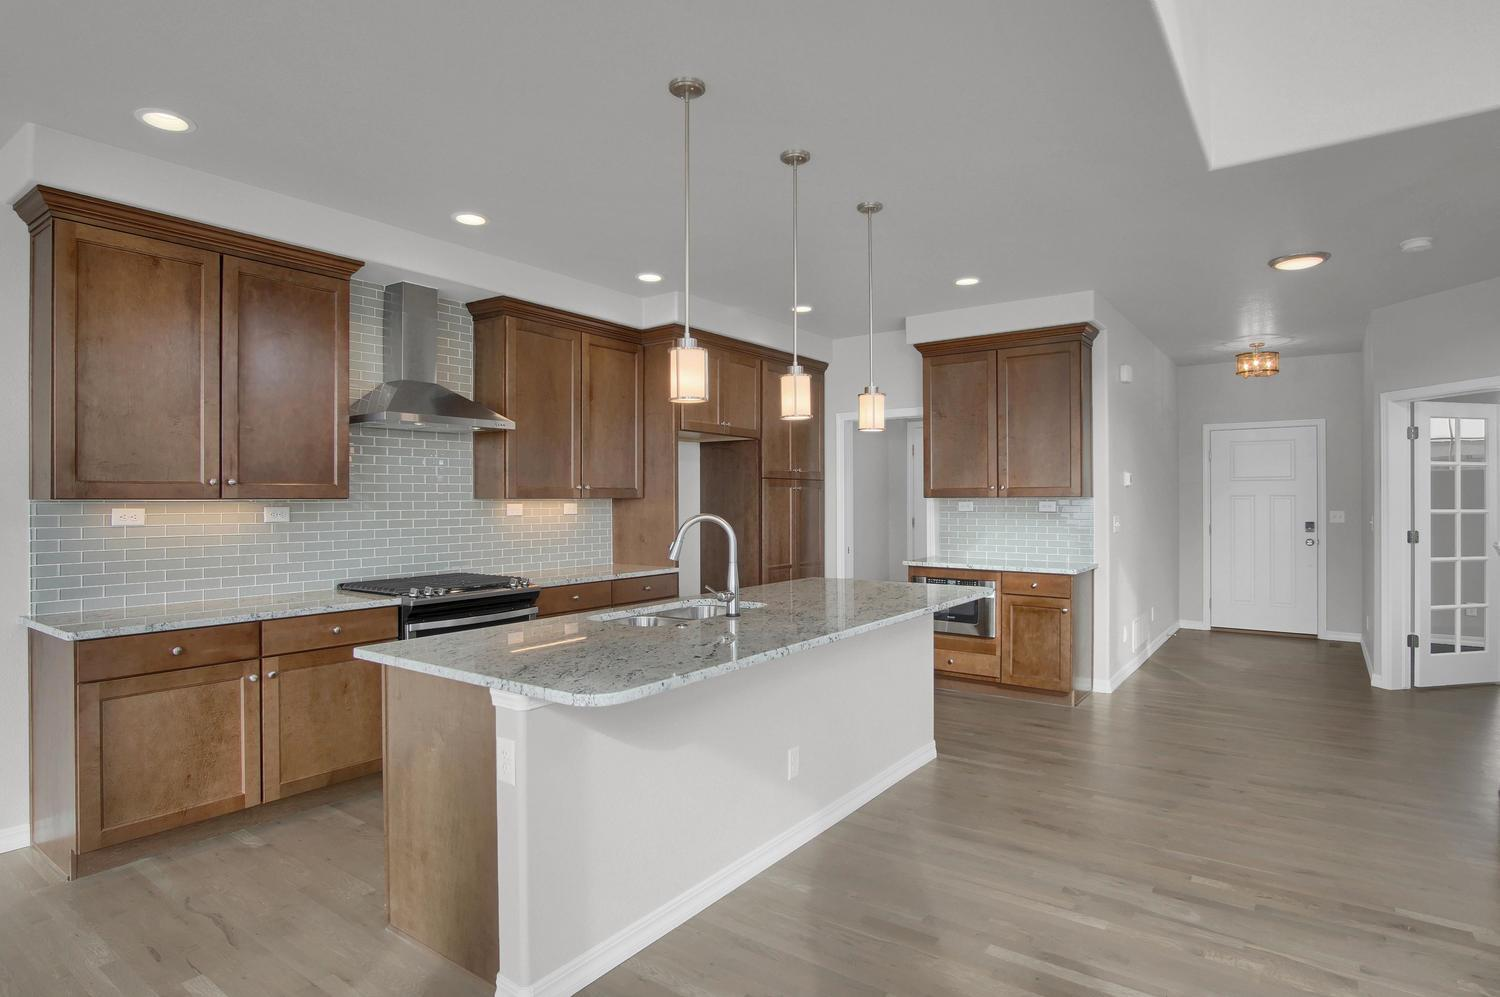 Kitchen featured in the Windom By Keller Homes, A Toll Bros. Co. in Colorado Springs, CO